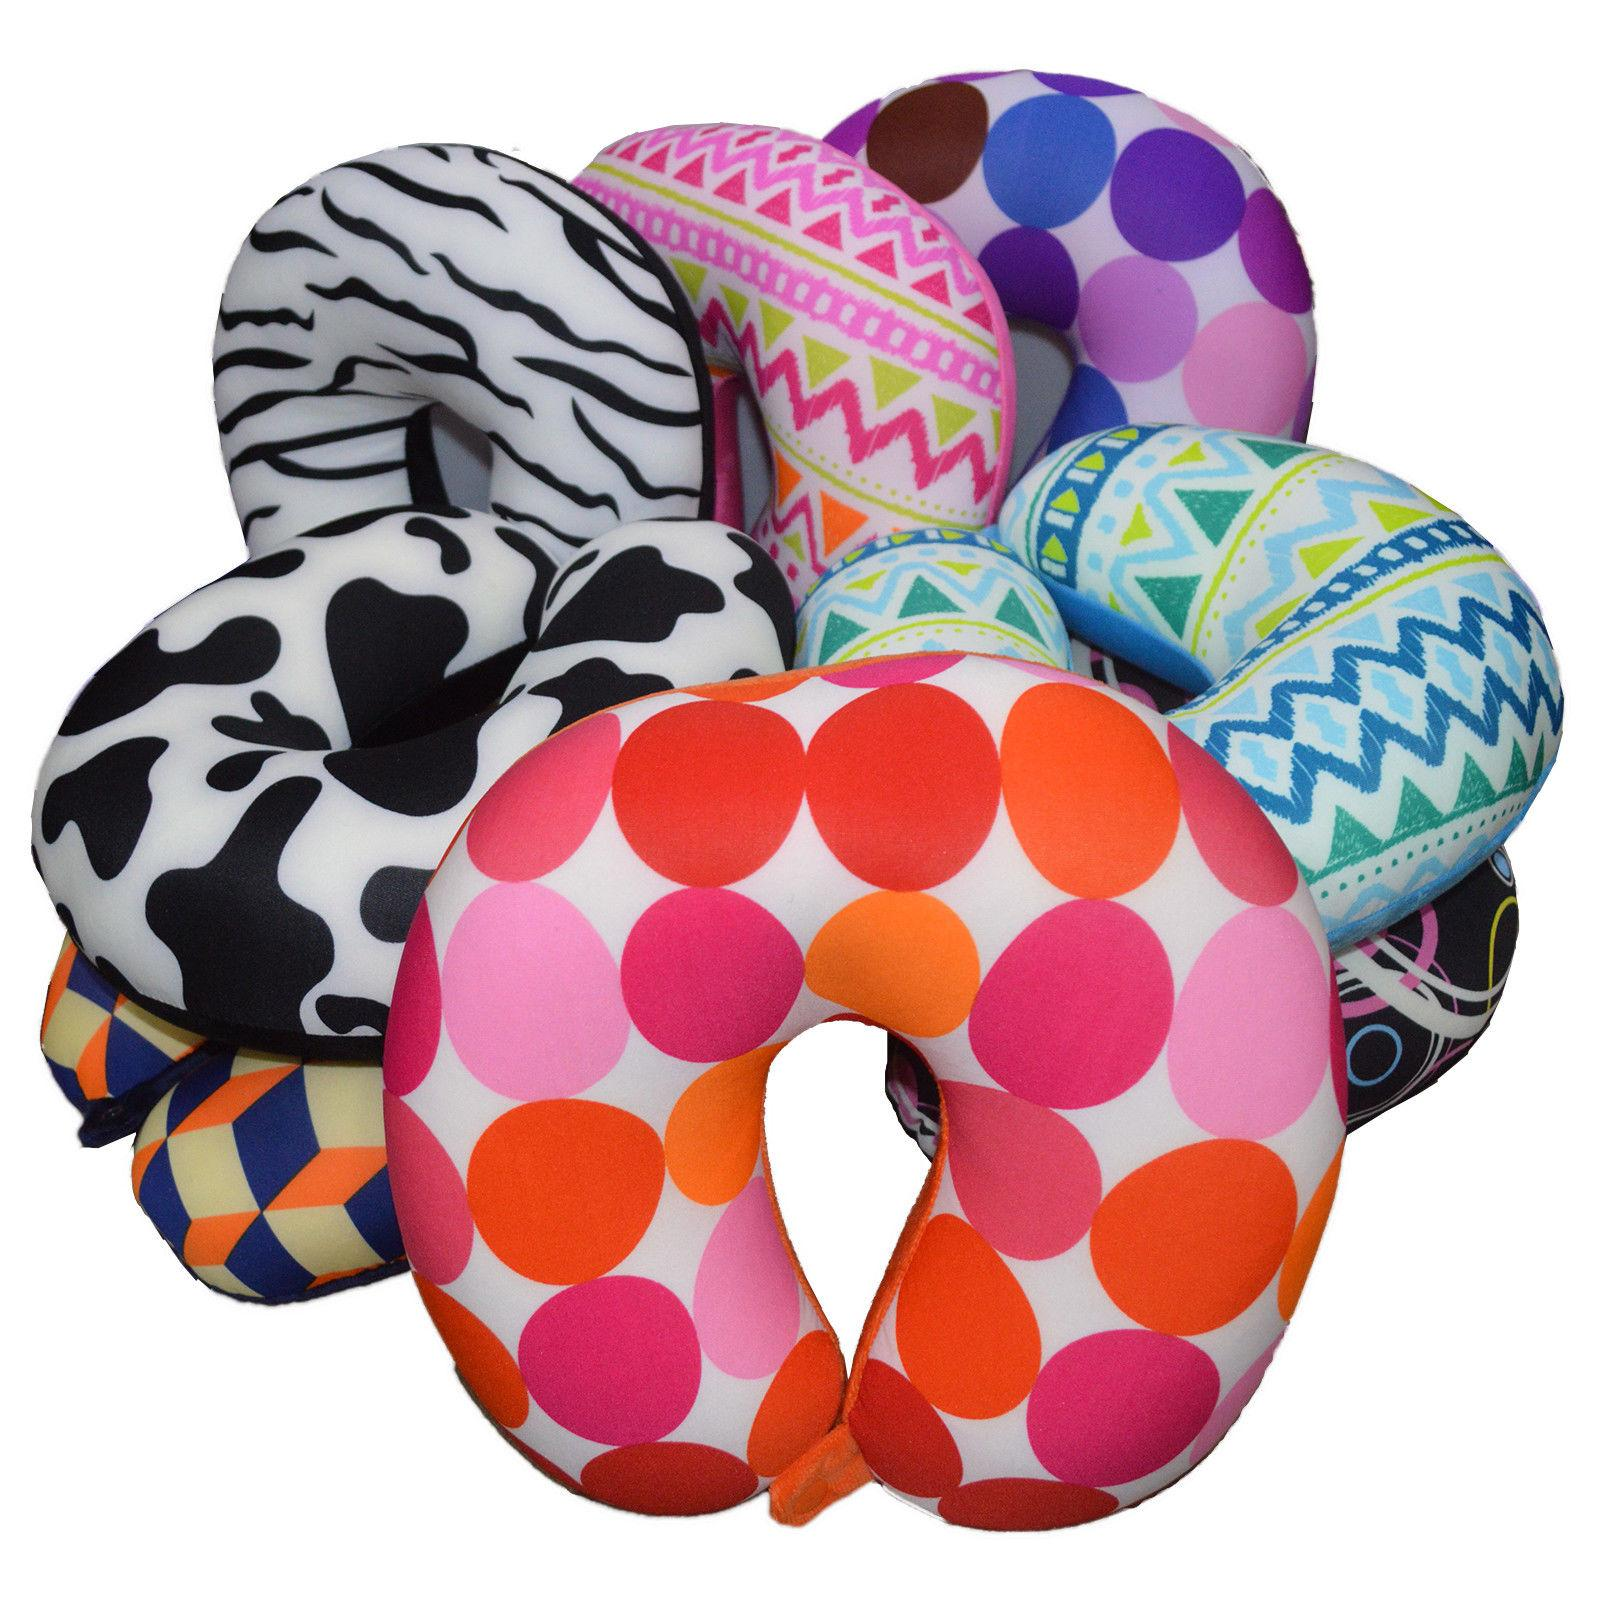 ultralight micro beads u shaped neck pillow